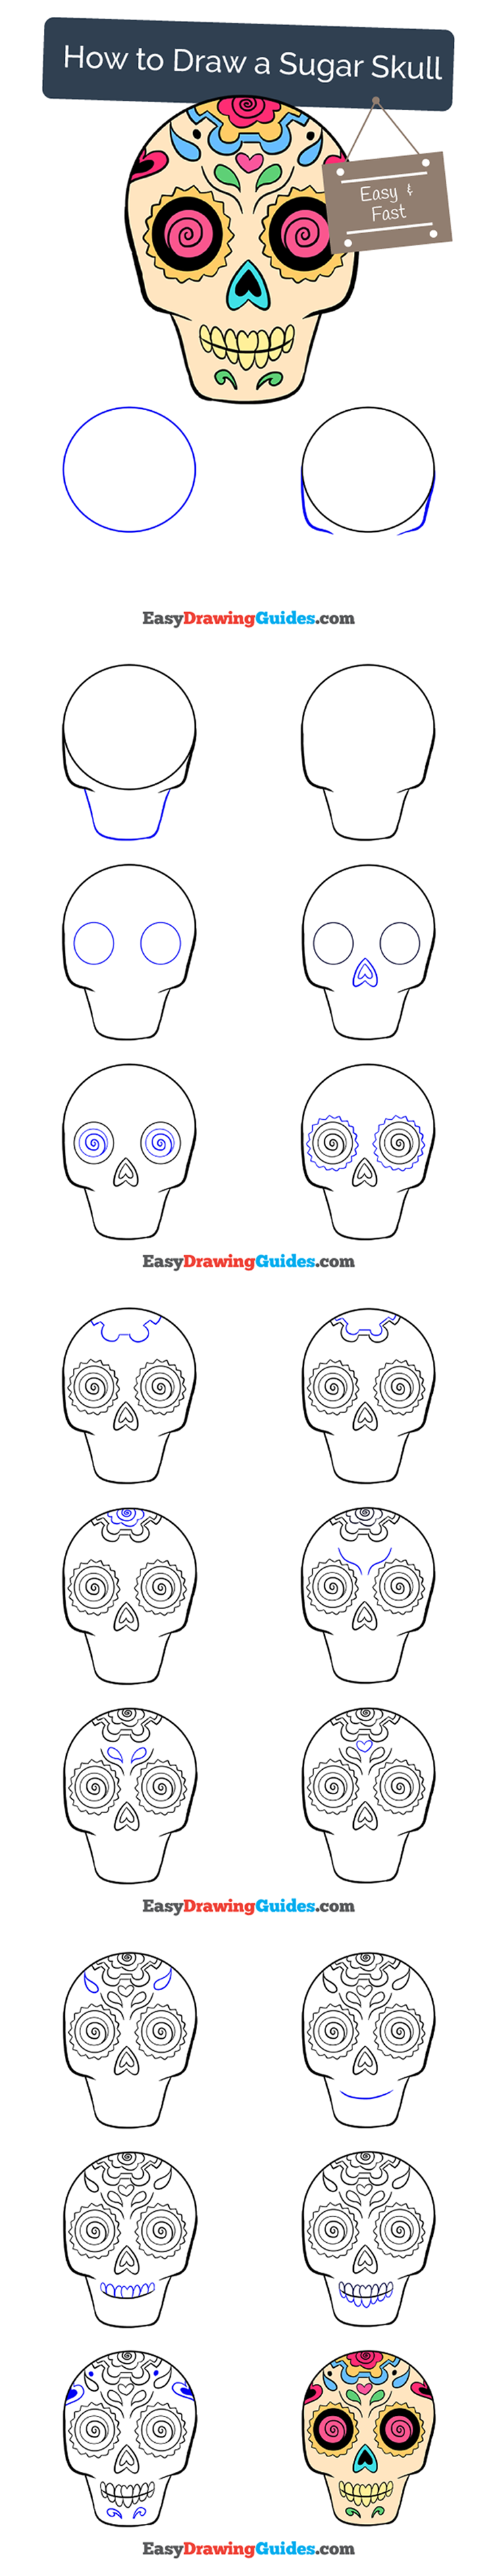 736x3812 How To Draw Sugar Skulls, A Drawing Tutorial For Kids And Adults